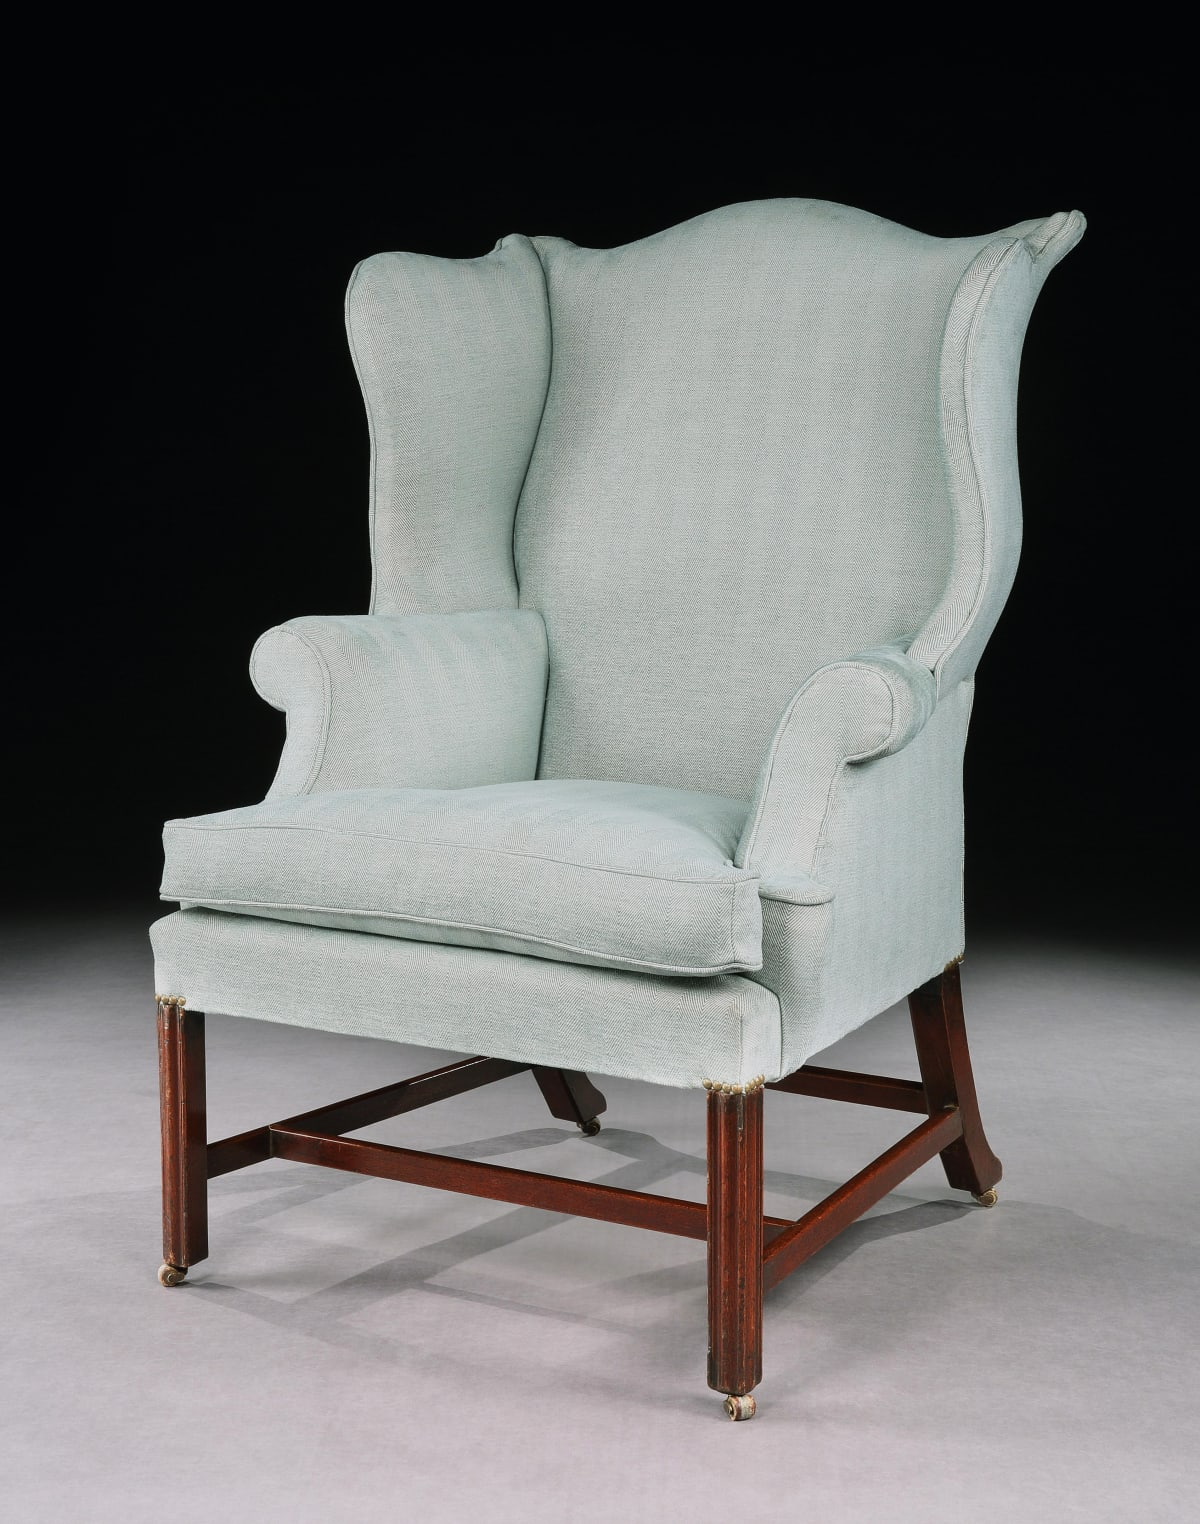 A GEORGE III MAHOGANY WING CHAIR, ENGLISH CIRCA, 1770